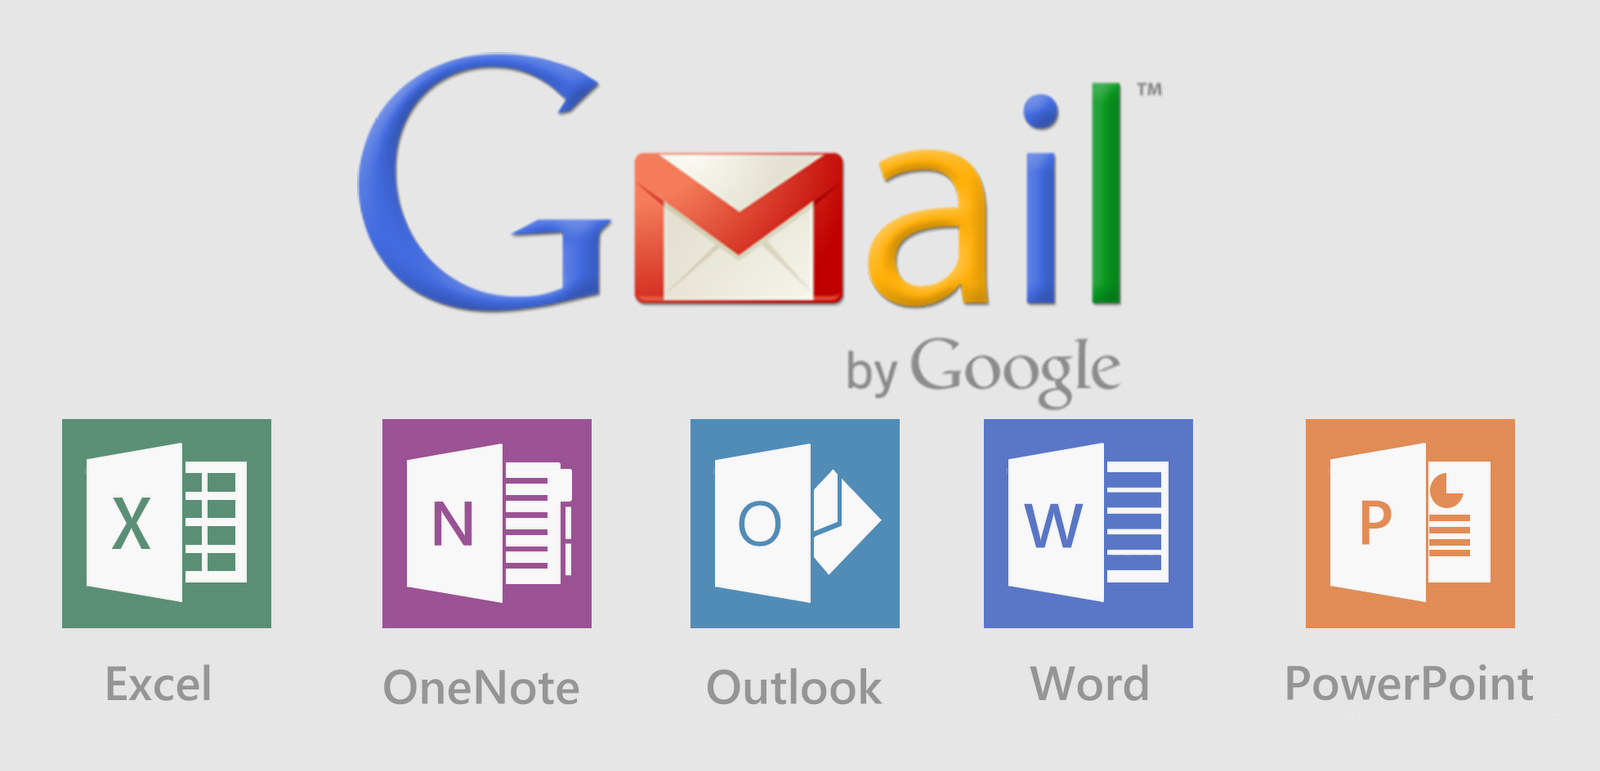 How to edit Microsoft Office files from Gmail